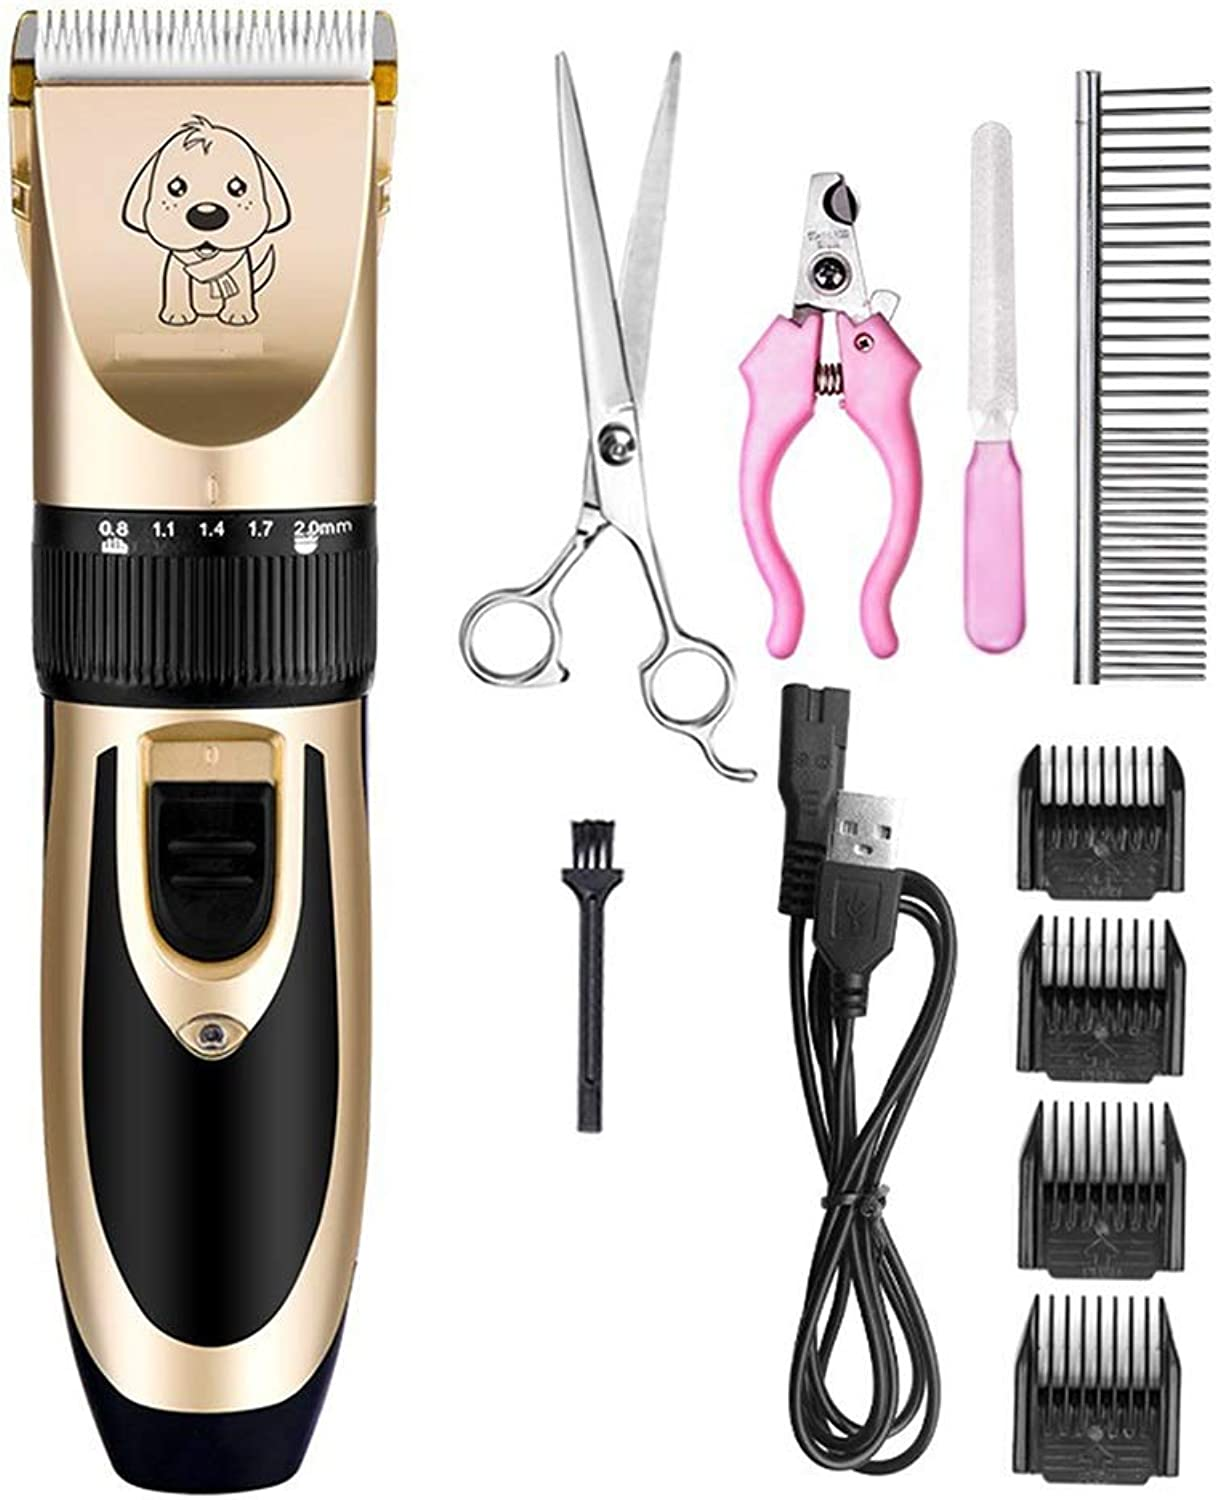 JIAO Pet Grooming Clippers Low Noise Low Vibration Rechargeable Professional Fivespeed Finetuning